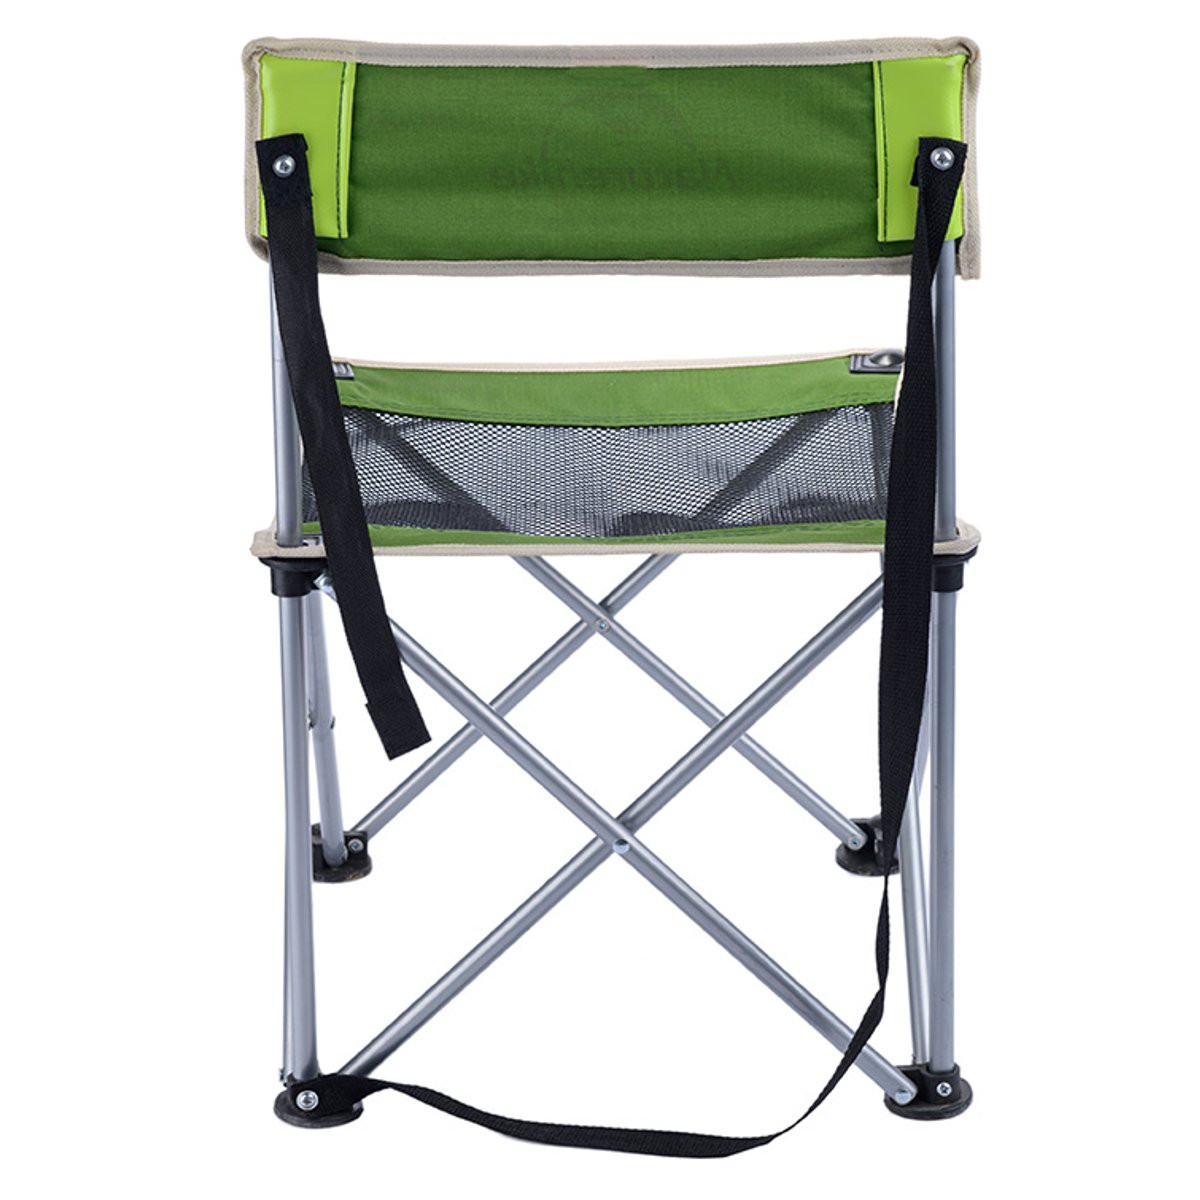 Portable Outdoor Kitchens: Outdoor Camping Portable Folding Chair Lightweight Fishing